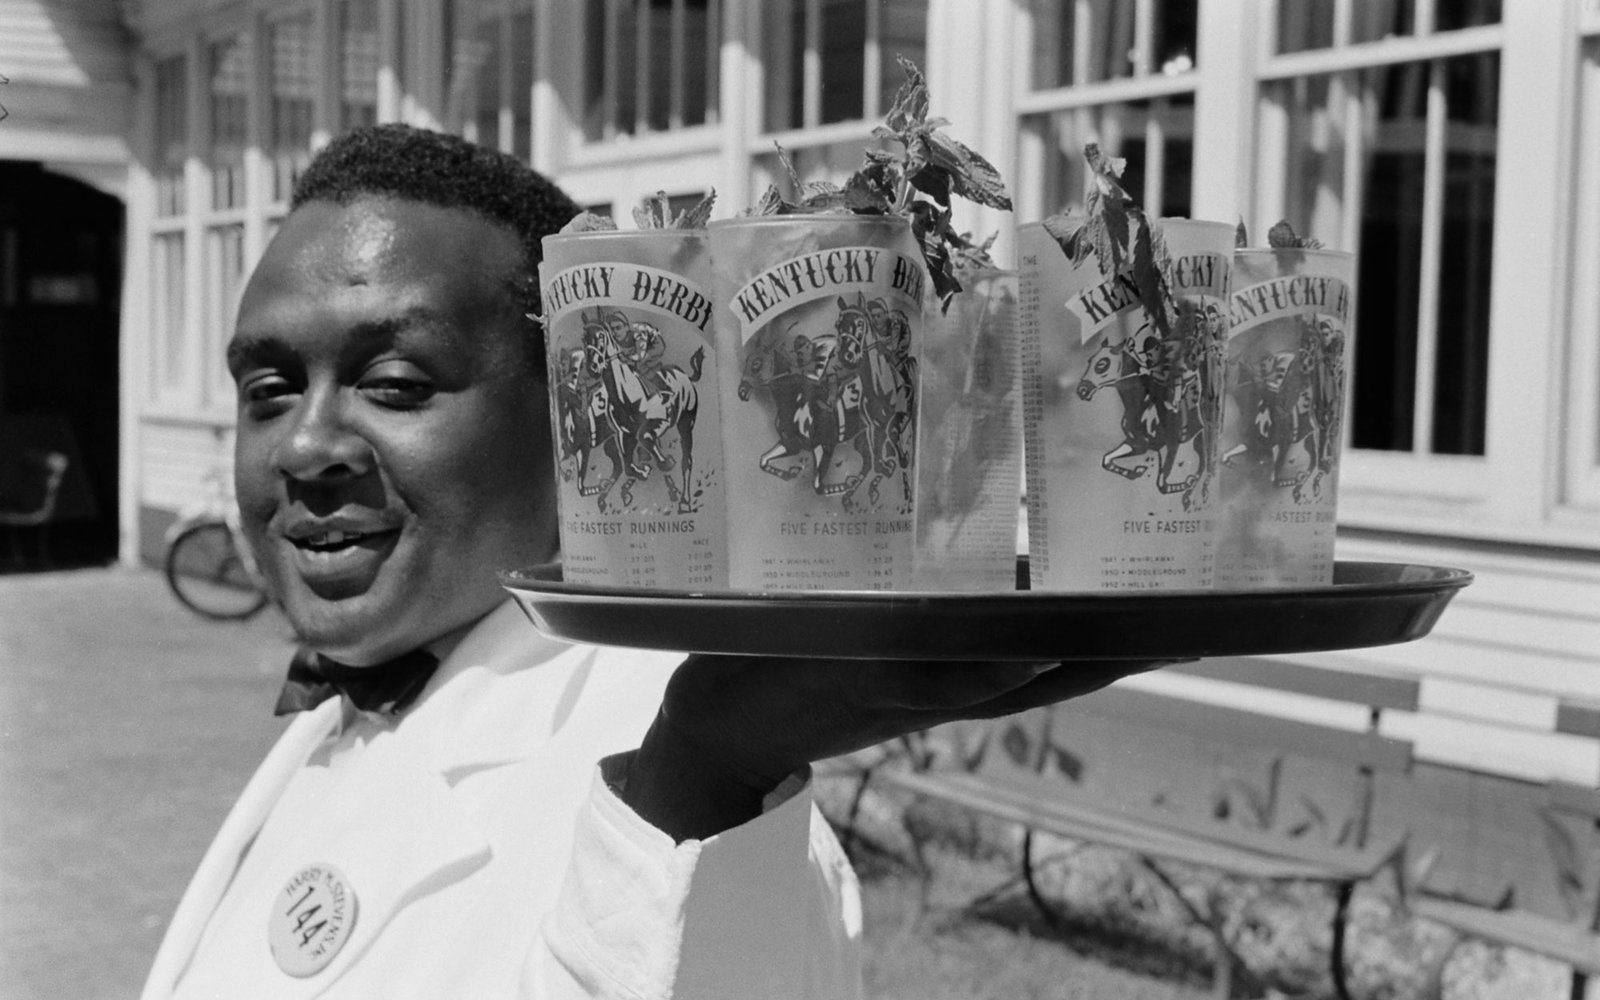 A waiter carrying mint juleps, 1955